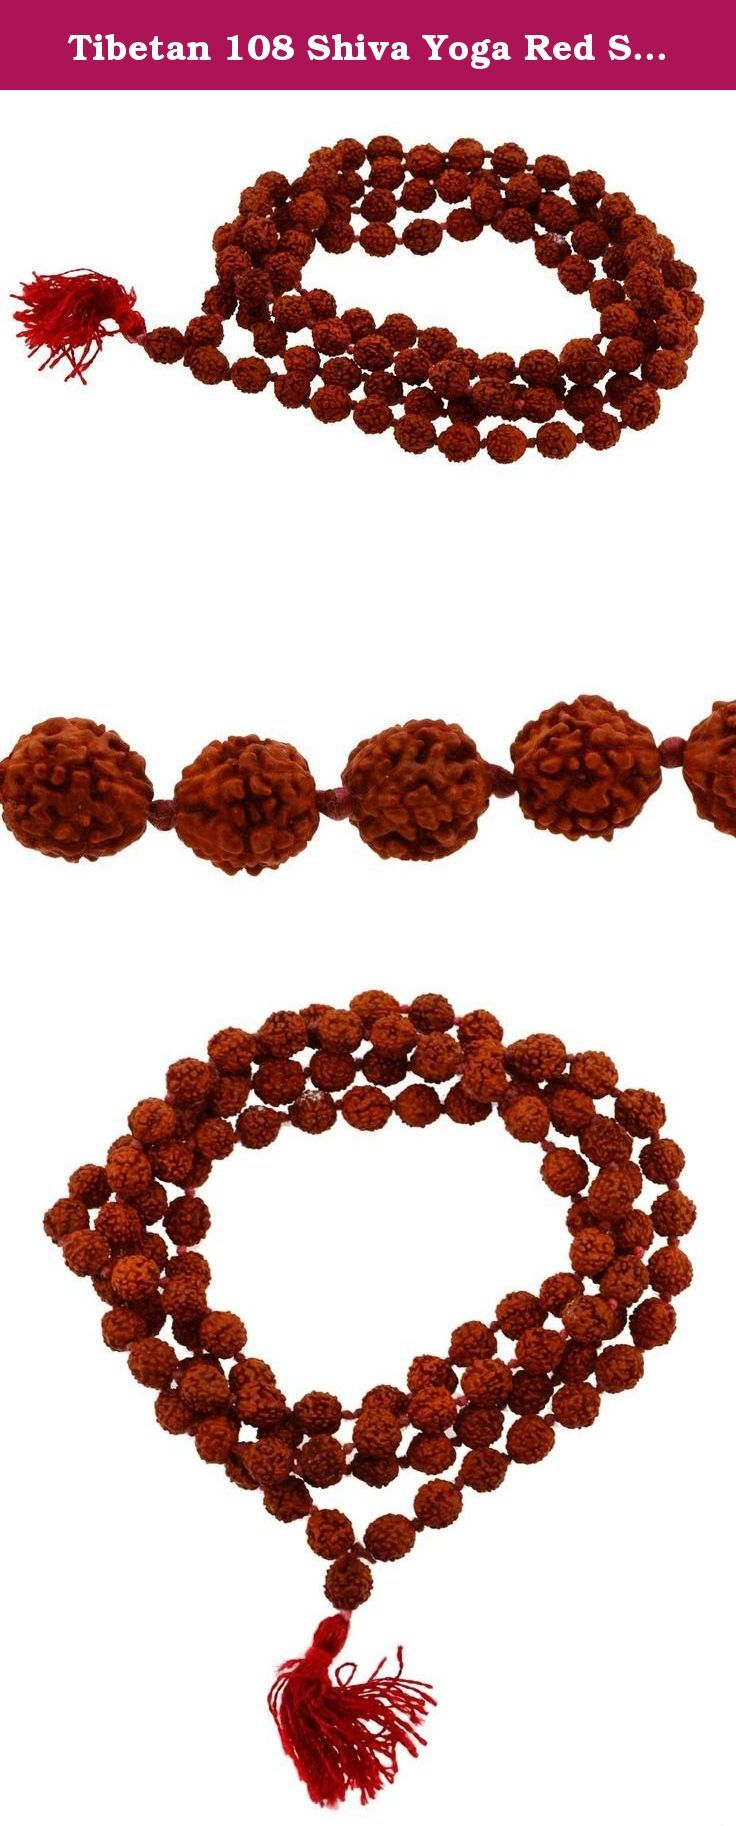 Tibetan 108 Shiva Yoga Red String Knotted Rudraksha Seeds Mala (Red Tassel Knotted). This prayer beads mala necklace is made from Rudraksha seeds. It is handmade in Nepal.It is Believed that Rudraksha seed was originated from the tears of Shiva. He had been meditating for many years for the welfare of all creatures. On opening the eyes, hot drops of tears rolled down and the mother earth gave birth to Rudraksha trees. Rudraksha seed malas are the original Vedic Beads of Power worn by the...